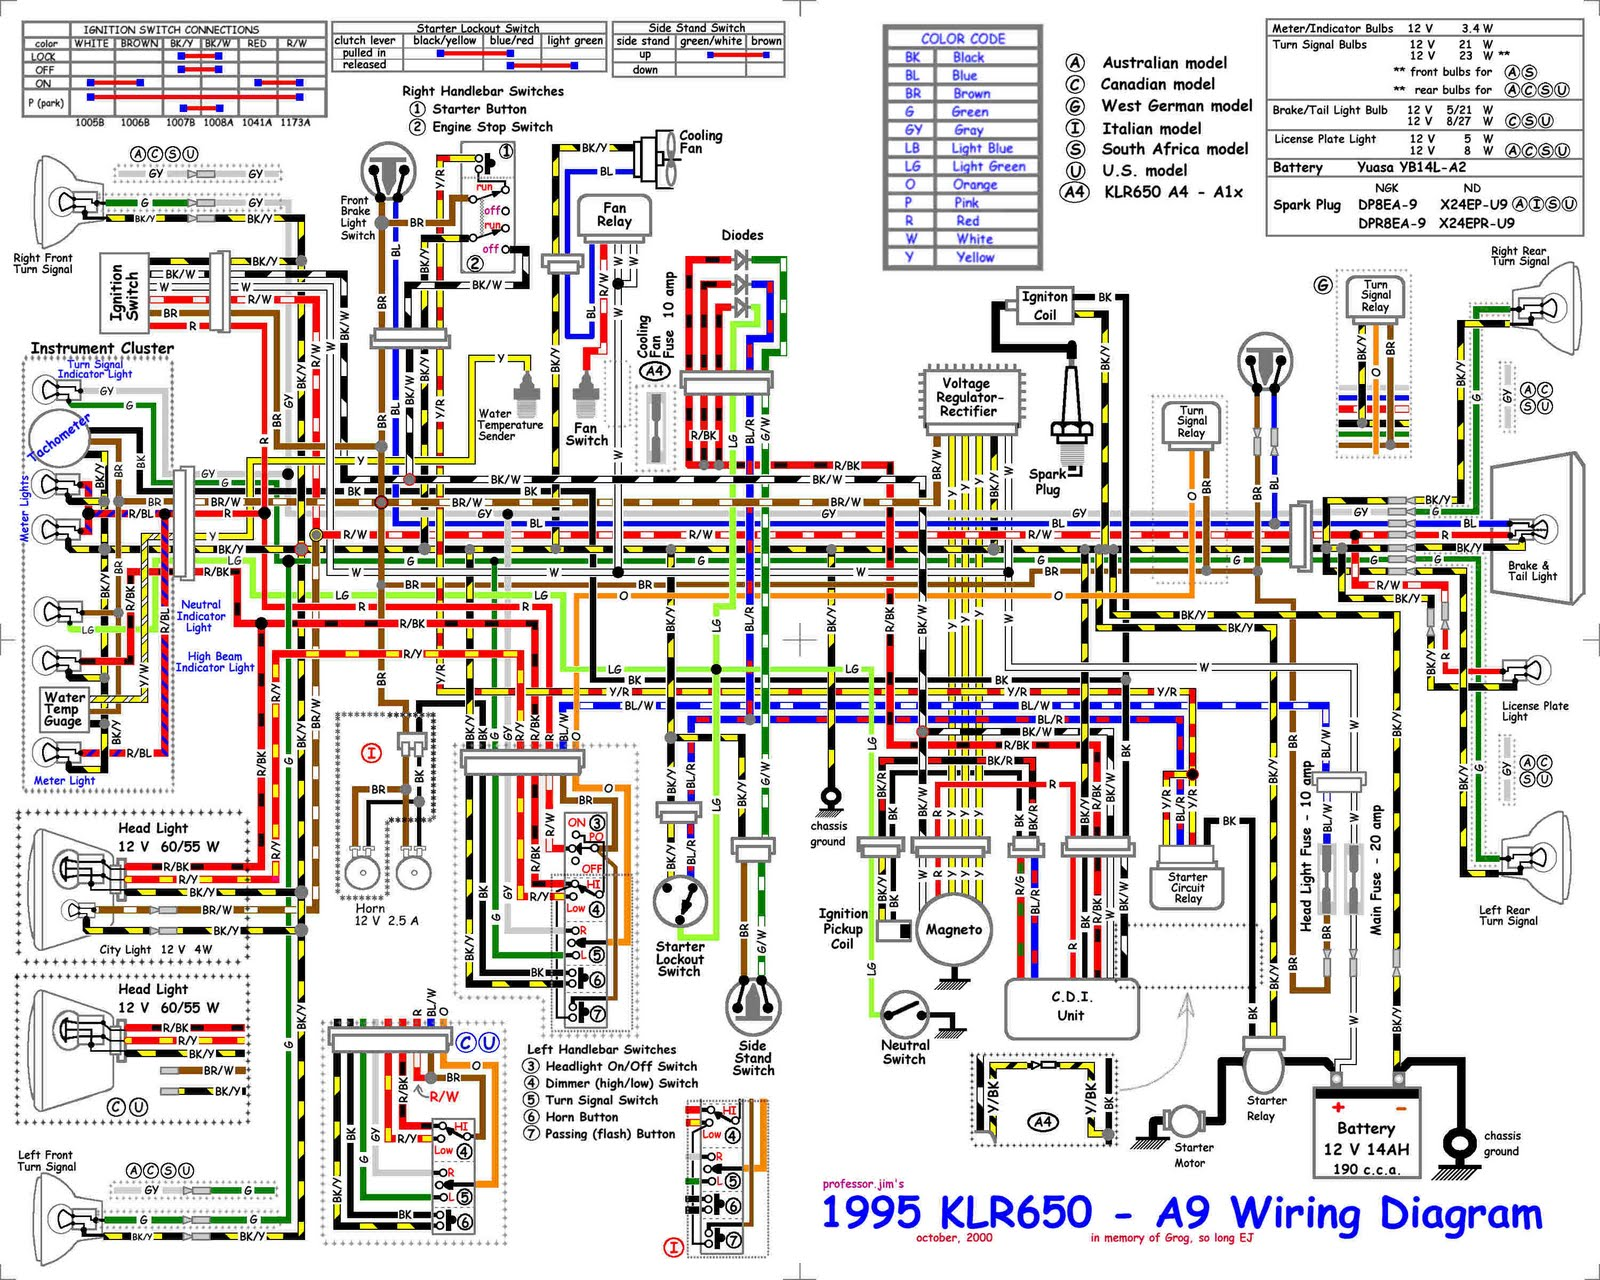 1974 monte carlo wiring diagram free auto wiring diagram 1974 chevrolet monte carlo wiring diagram 2001 monte carlo stereo wiring diagram at cos-gaming.co